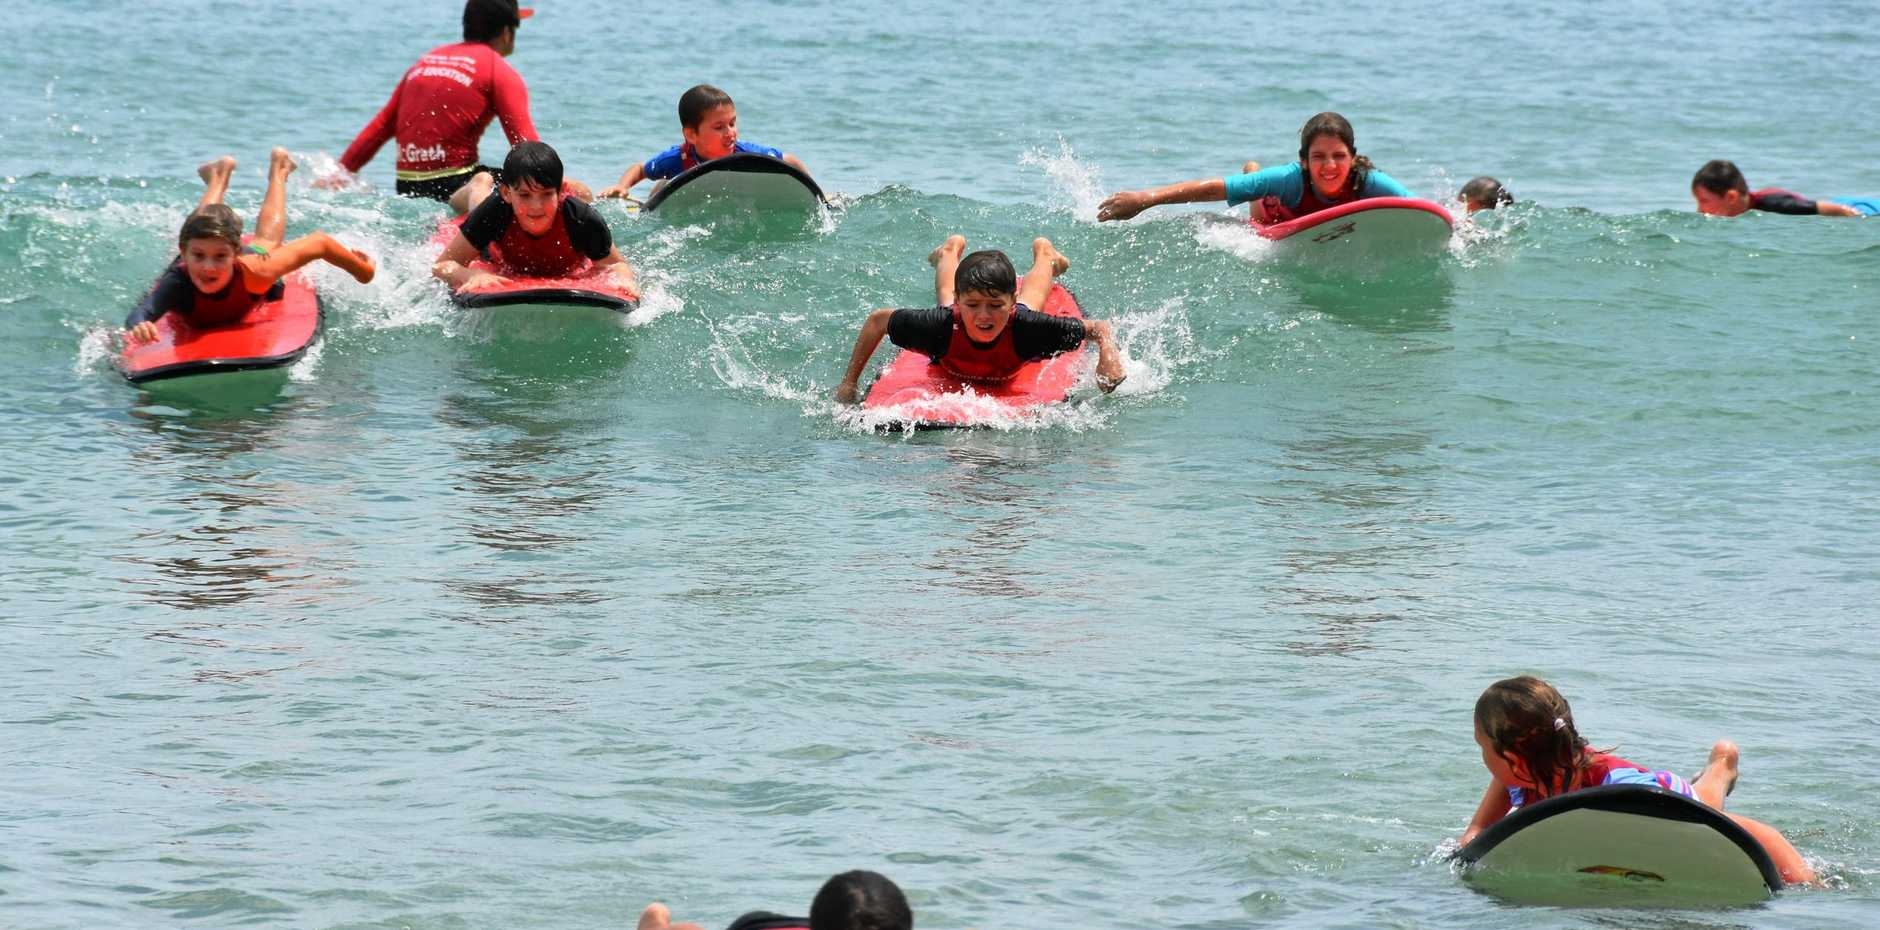 EUMUNDI State School kids enjoyed the tame waves during surf awareness training earlier this week. Forecasters are predicting a considerable jump in swell conditions throughout Sunday and into Monday.